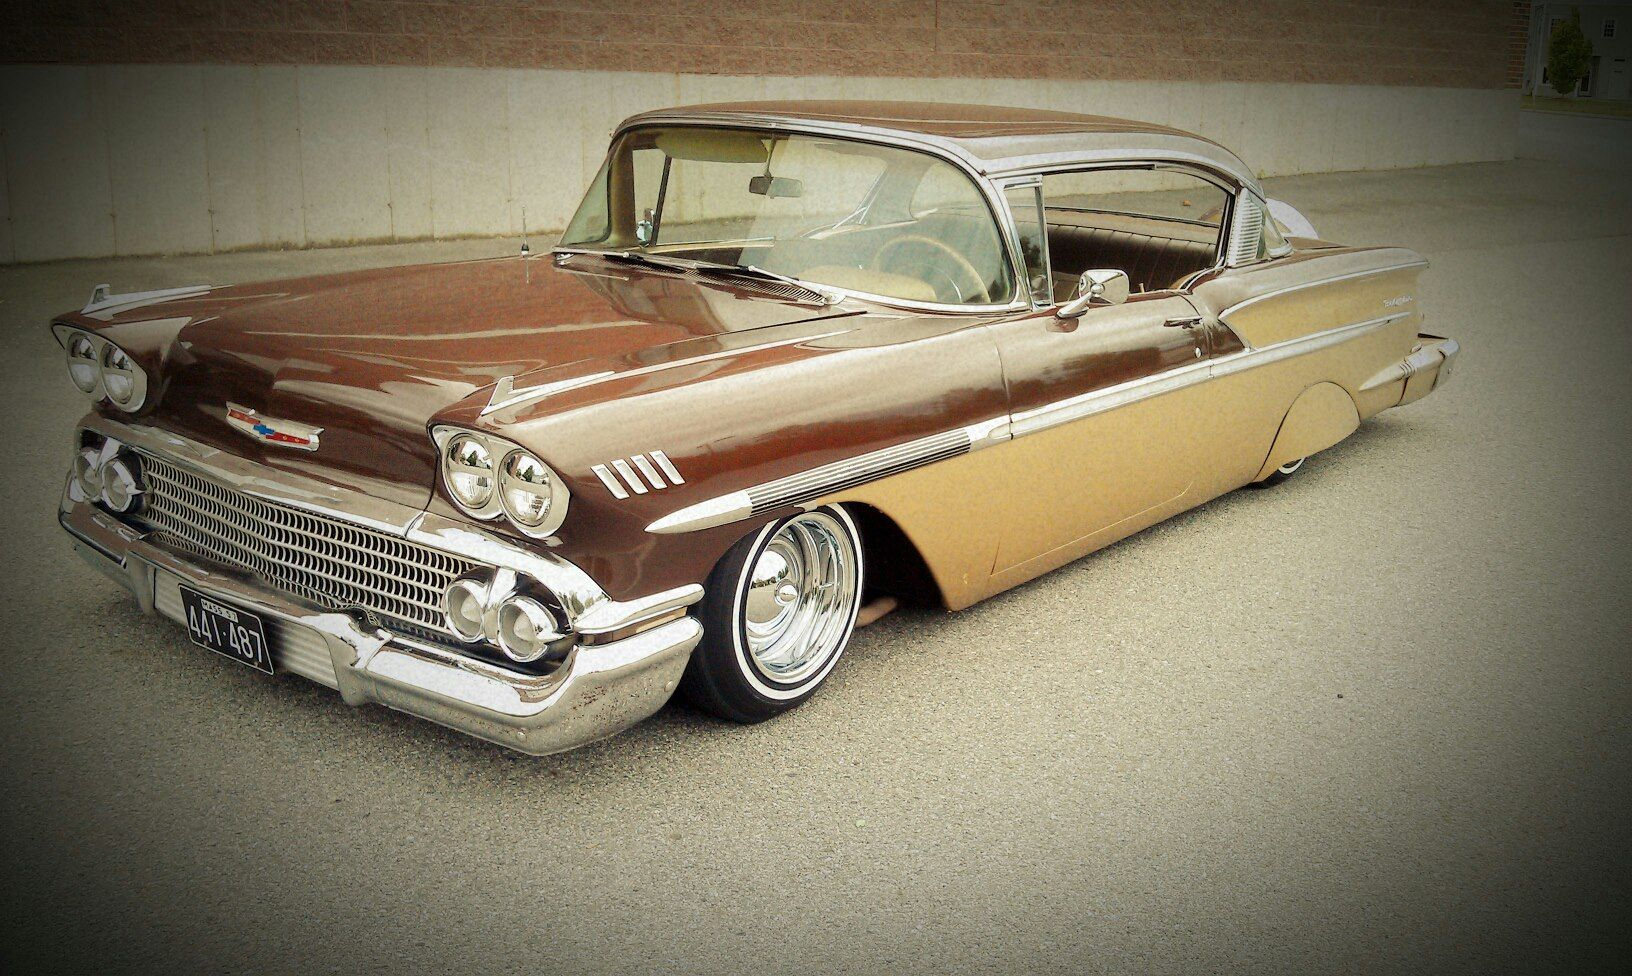 All Chevy 58 chevy bel air : 1958 Chevrolet | Impalas | Pinterest | Chevrolet, Cars and ...